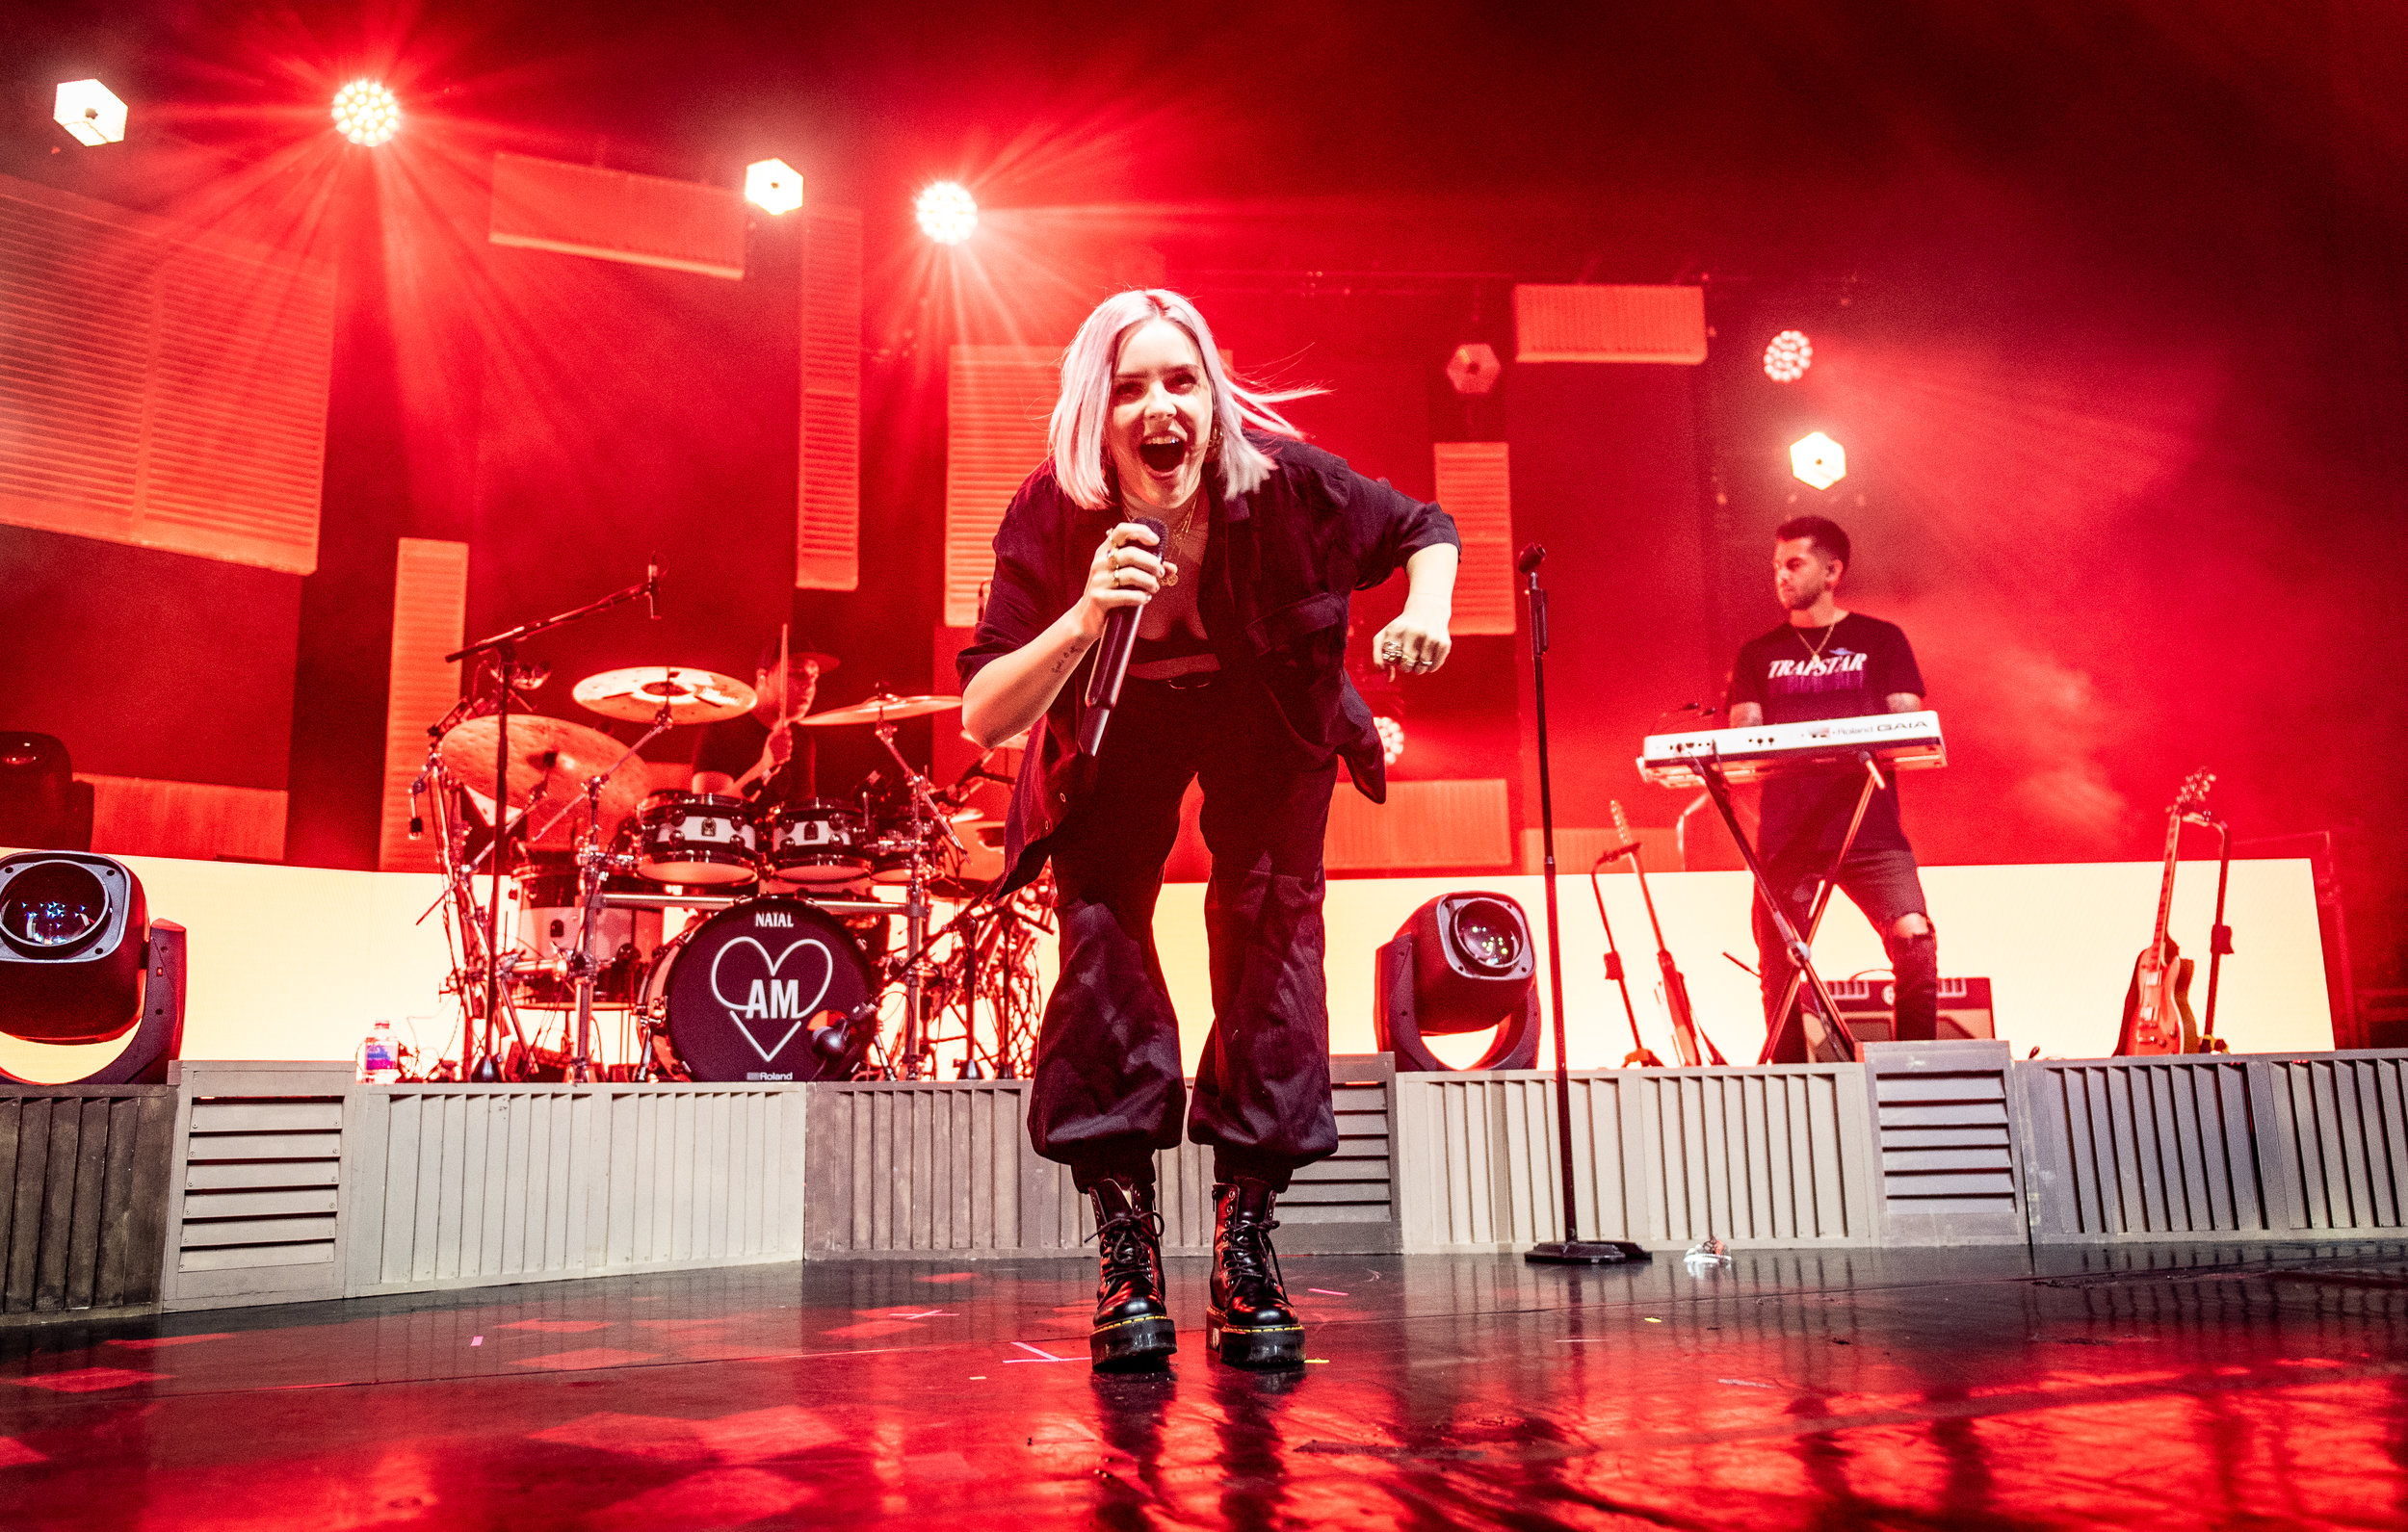 ANNE-MARIE PERFORMING AT EDINBURGH'S USHER HALL - 29.05.2019  PICTURE BY: CALUM BUCHAN PHOTOGRAPHY